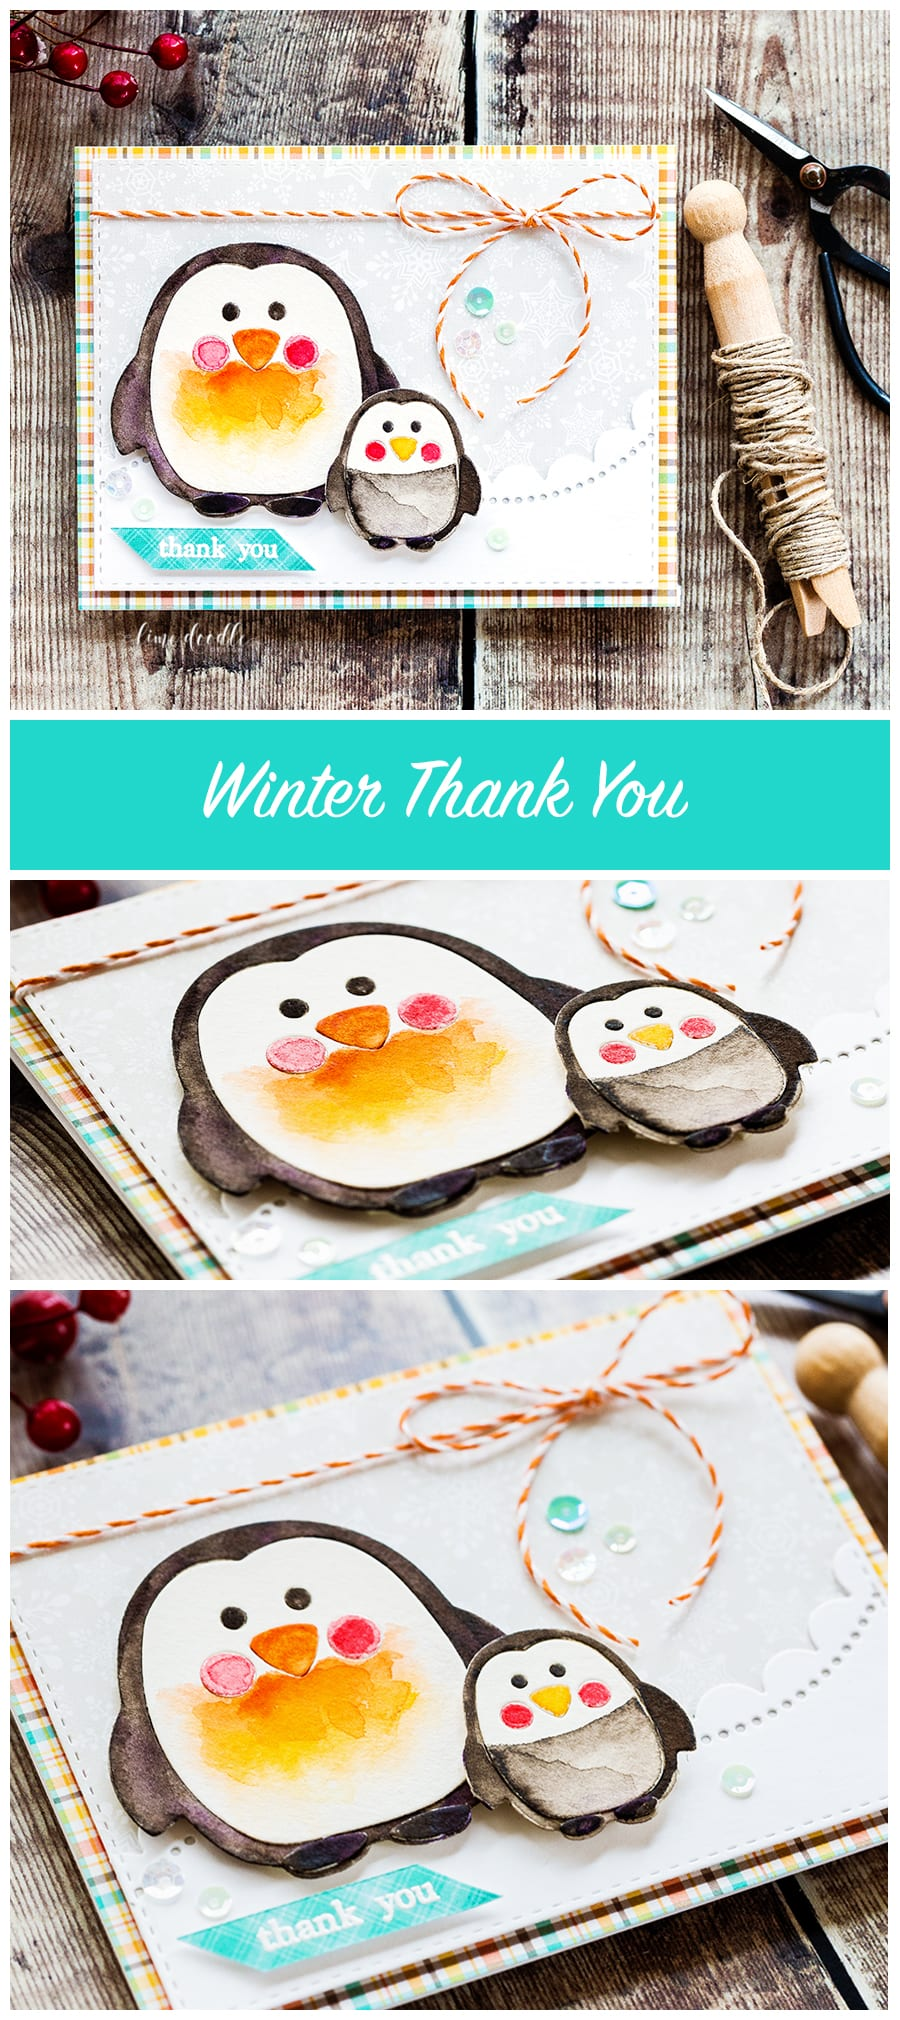 Cute penguin winter thanks. Find out more about this winter thank you card by clicking on the following link: https://limedoodledesign.com/2016/12/cute-penguin-winter-thanks/